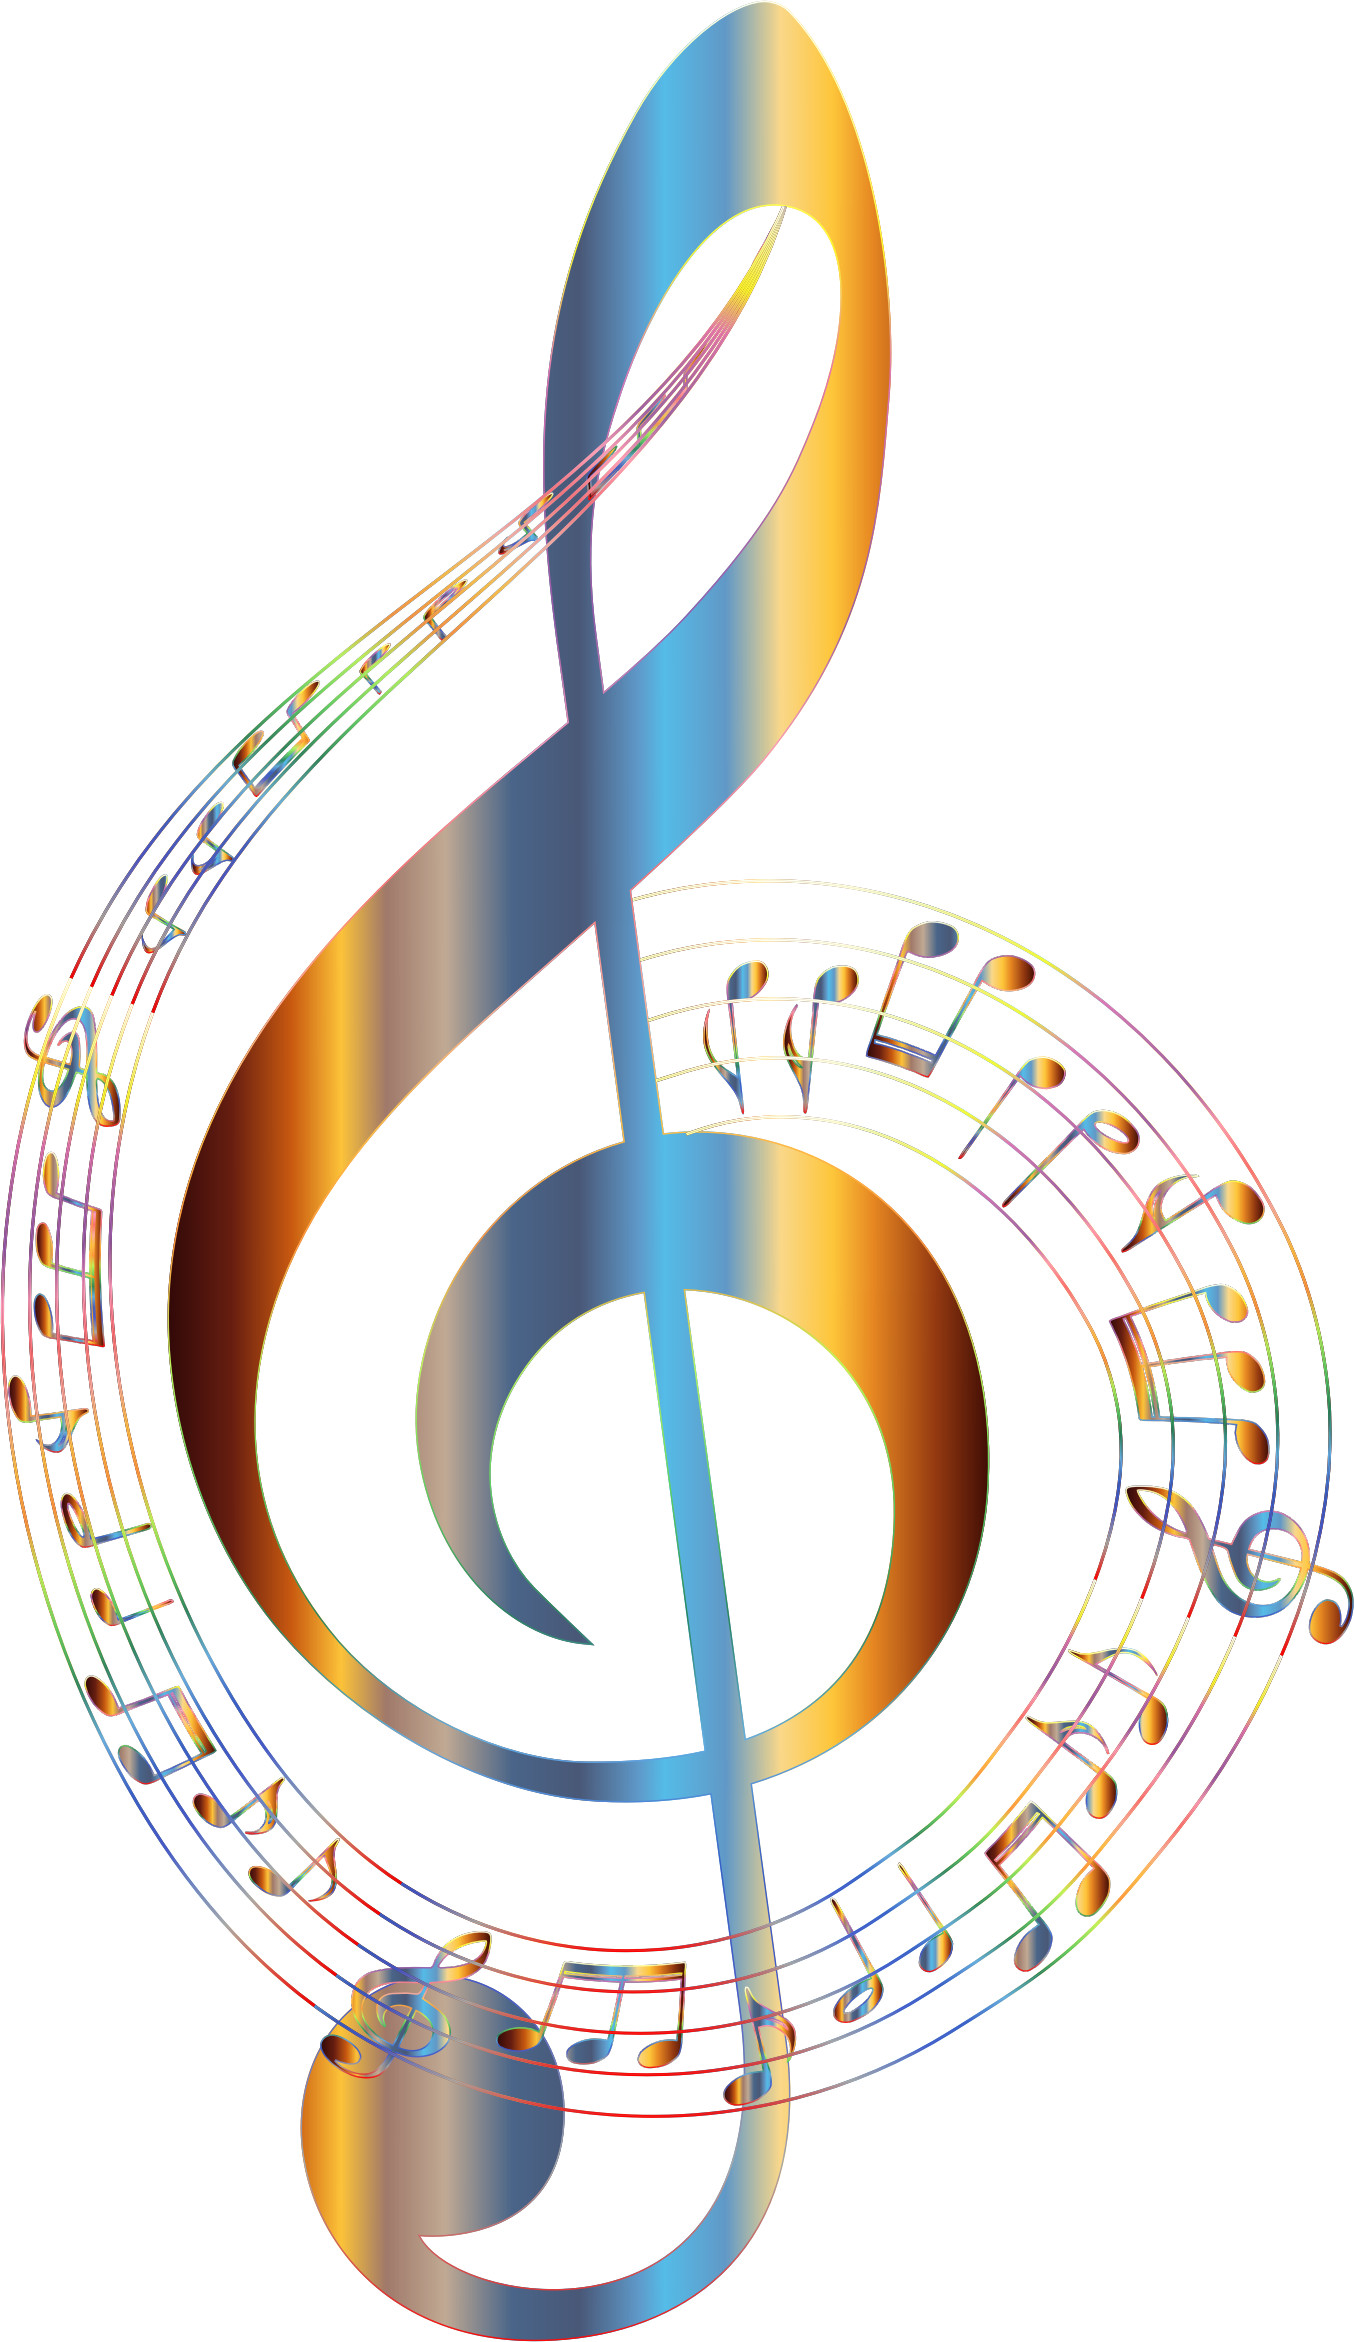 Colorful Music Notes Wallpaper Free Download Best Colorful Music